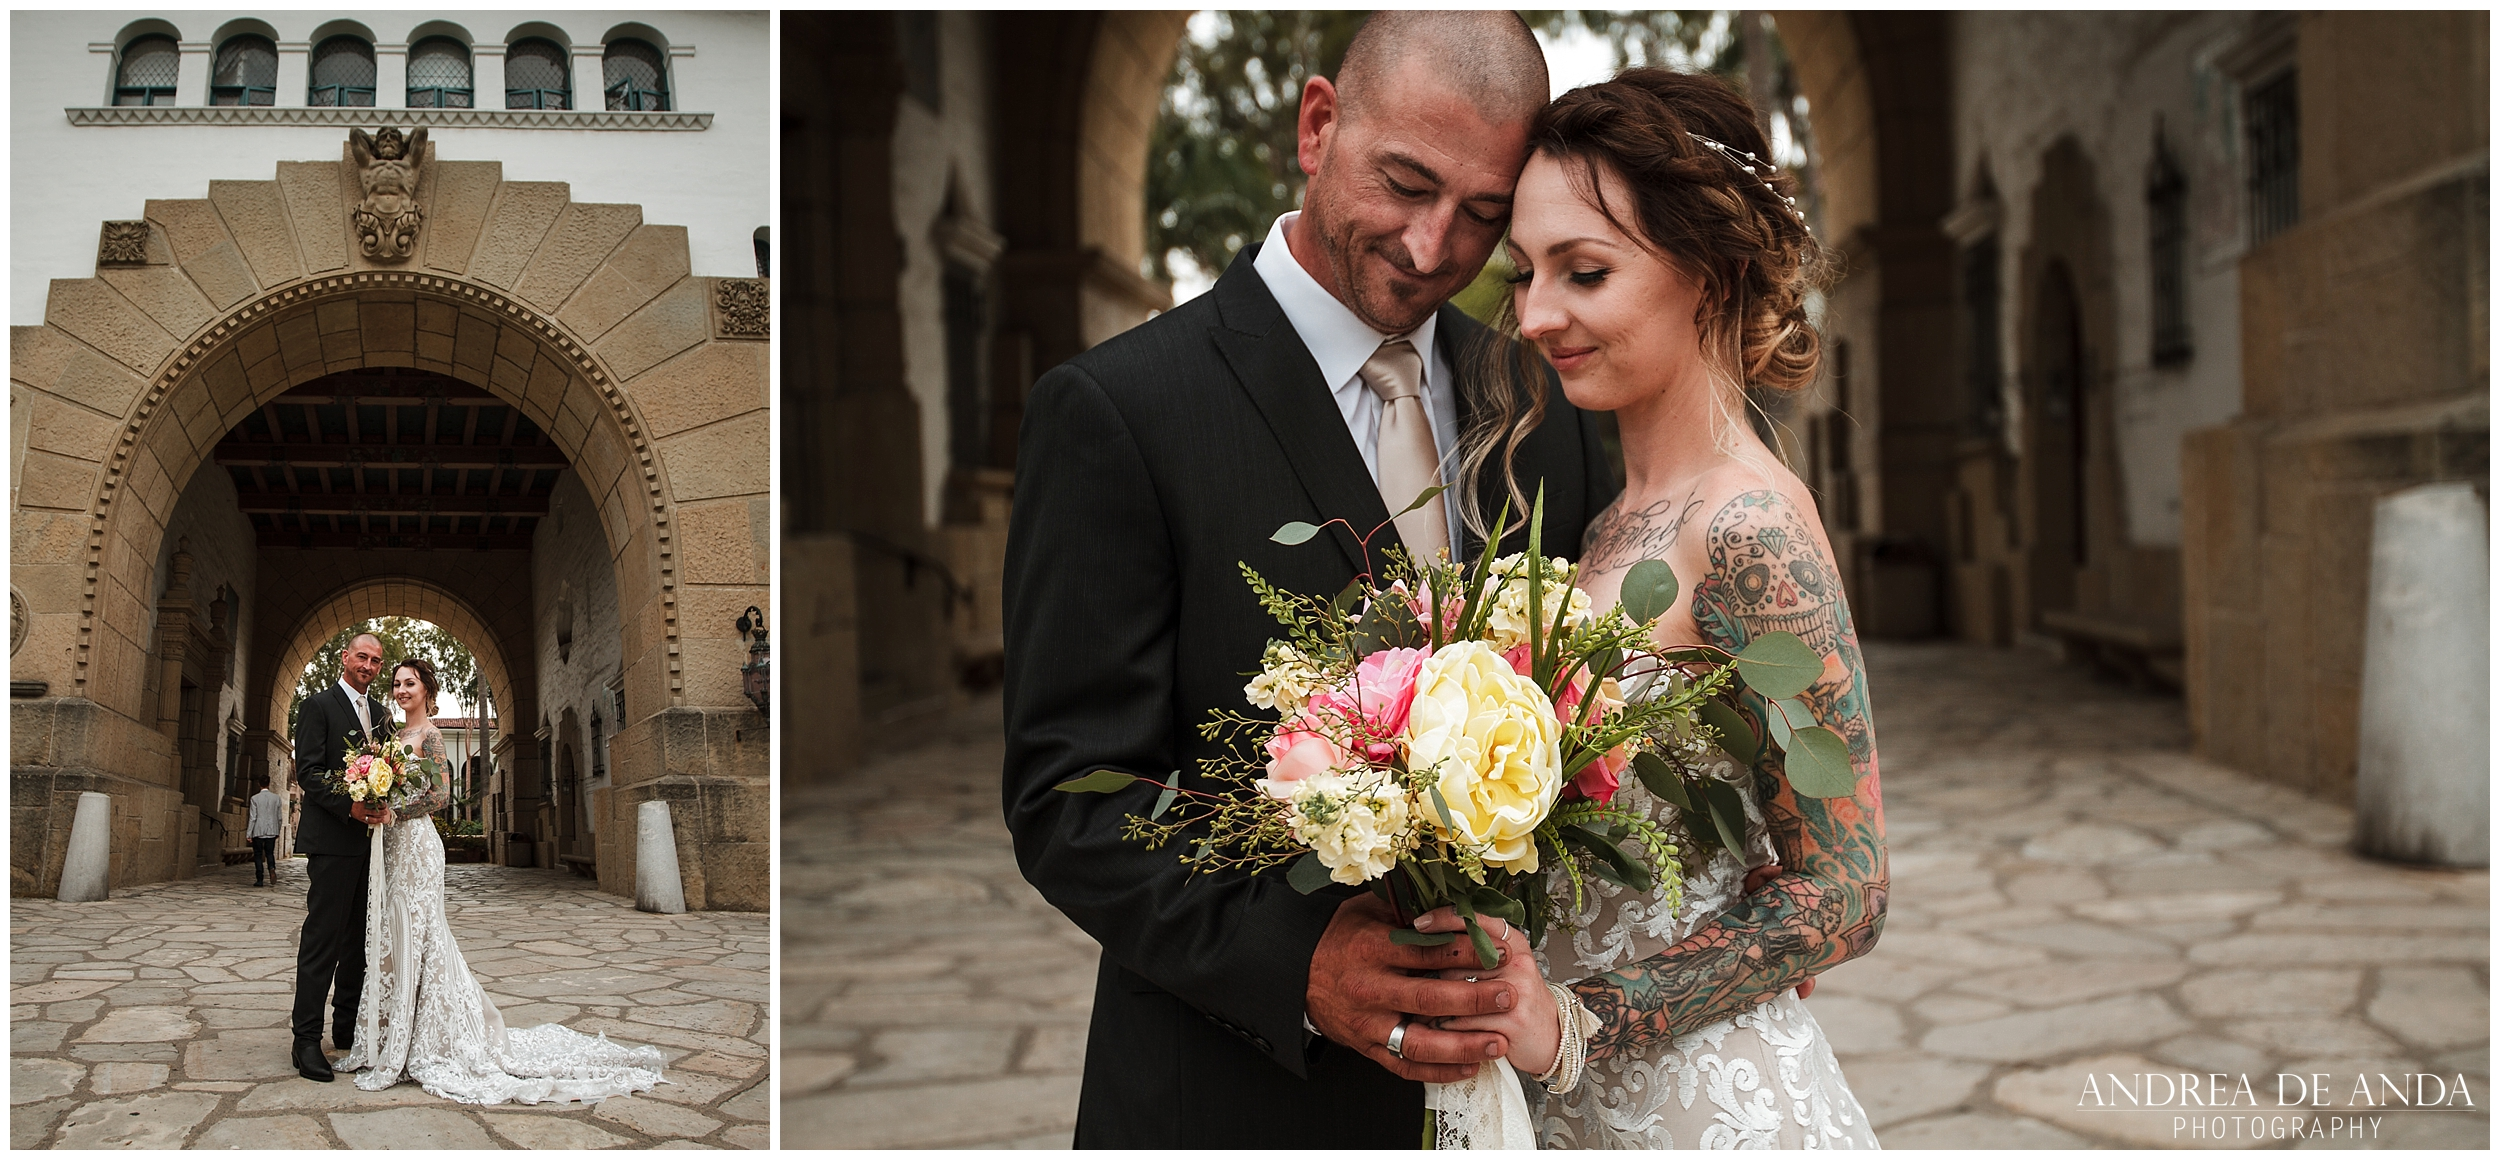 Santa Barbara Courthouse Elopement by Andrea de Anda Photography__0010.jpg